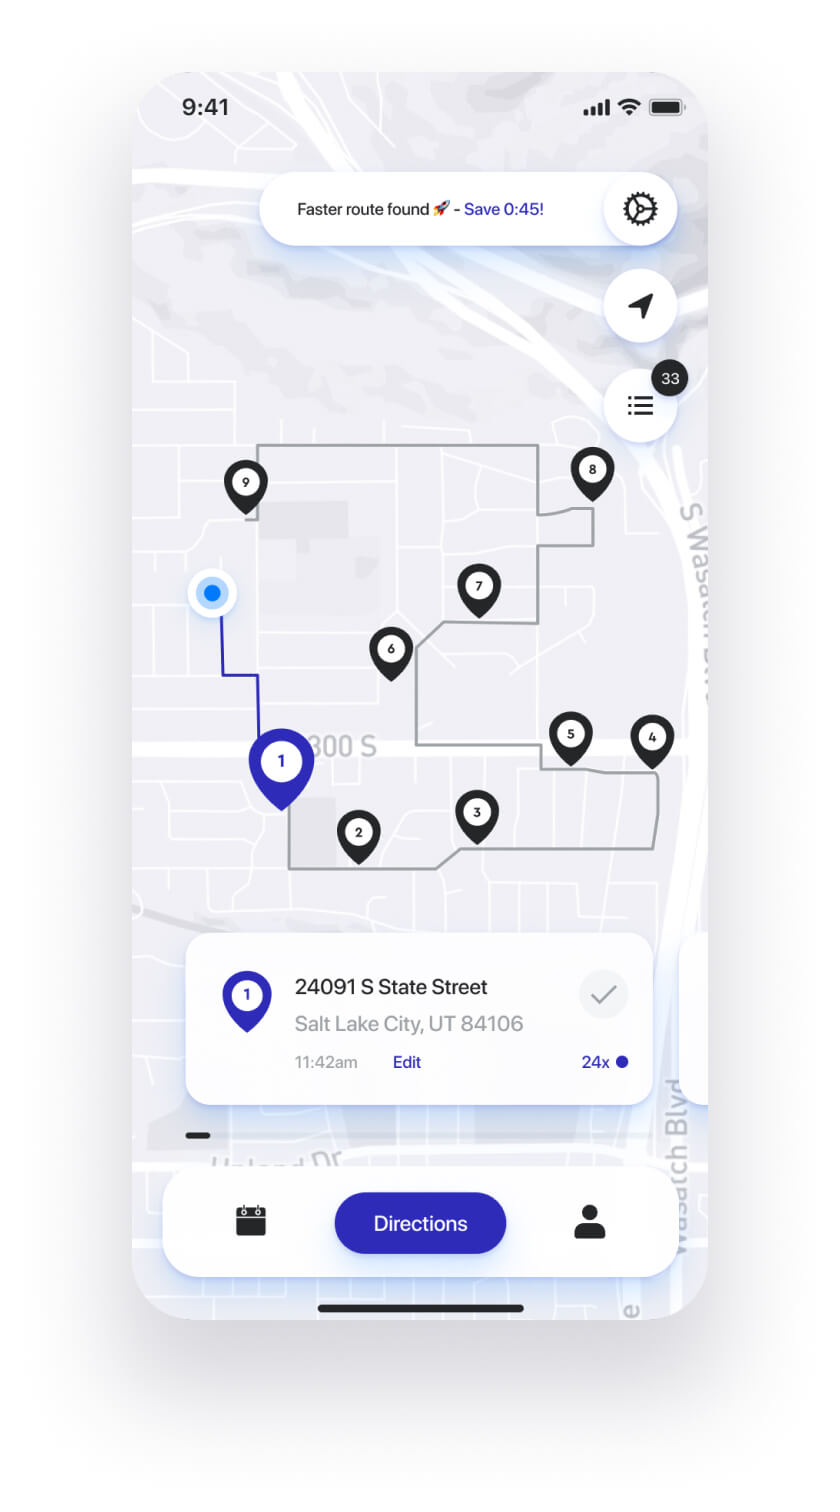 Straightaway route planner app - optimize the order of your stops for the fastest route.